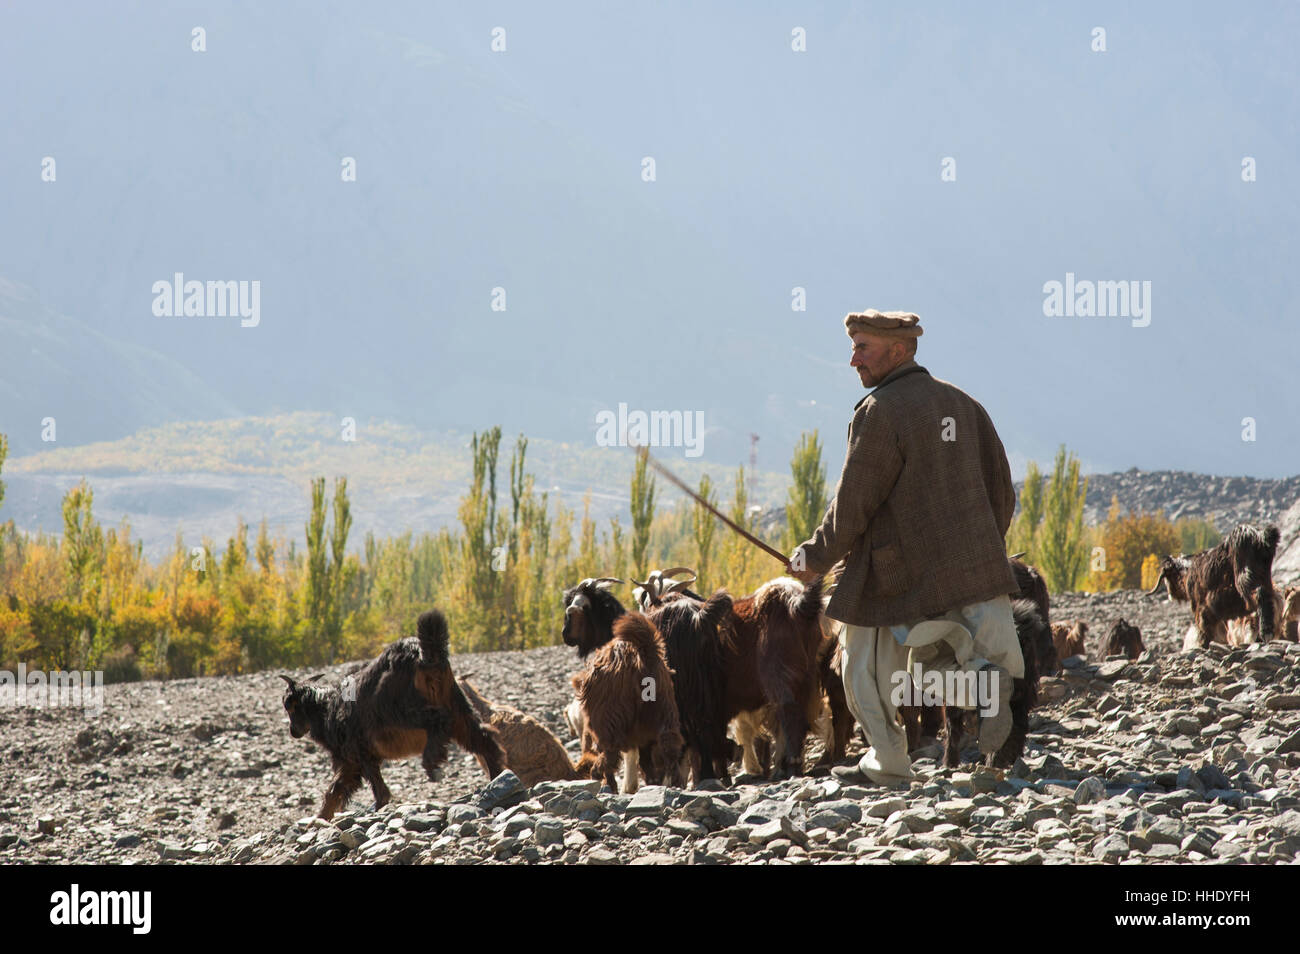 A shepherd in the remote Bagrot Valley, Gilgit-Baltistan, Pakistan - Stock Image